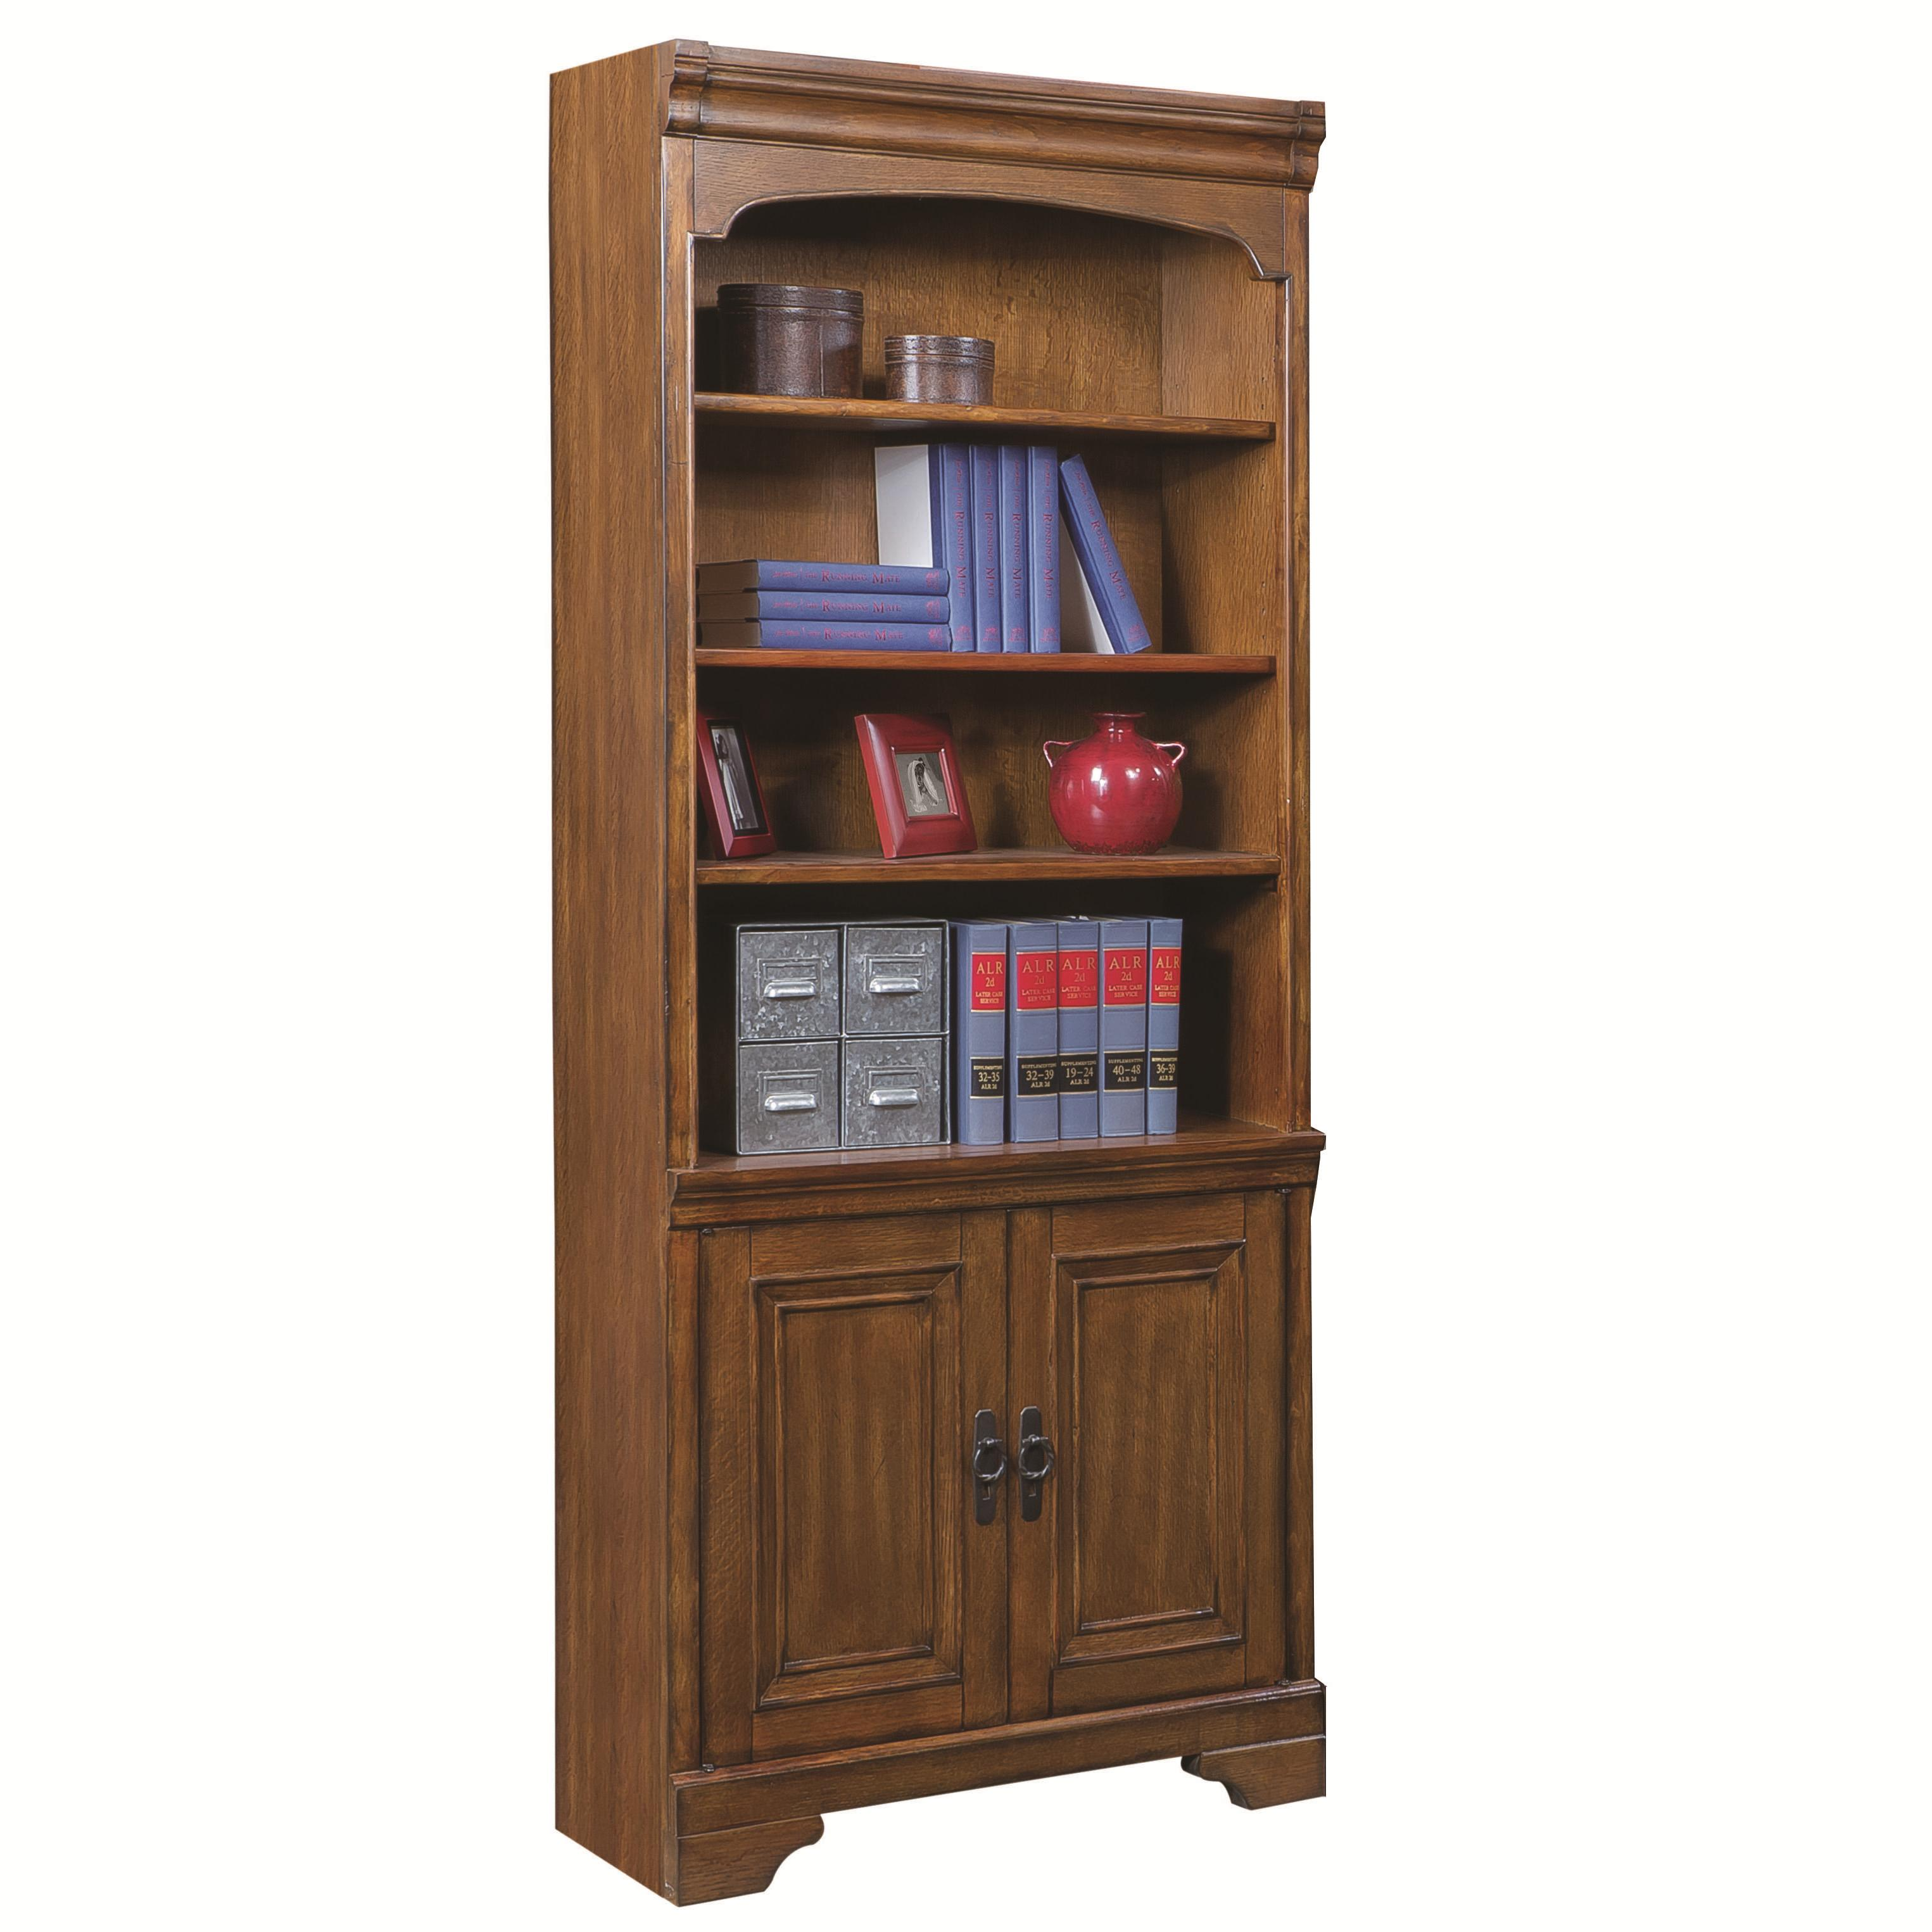 Aspenhome Centennial Door Bookcase  - Item Number: I49-332-2